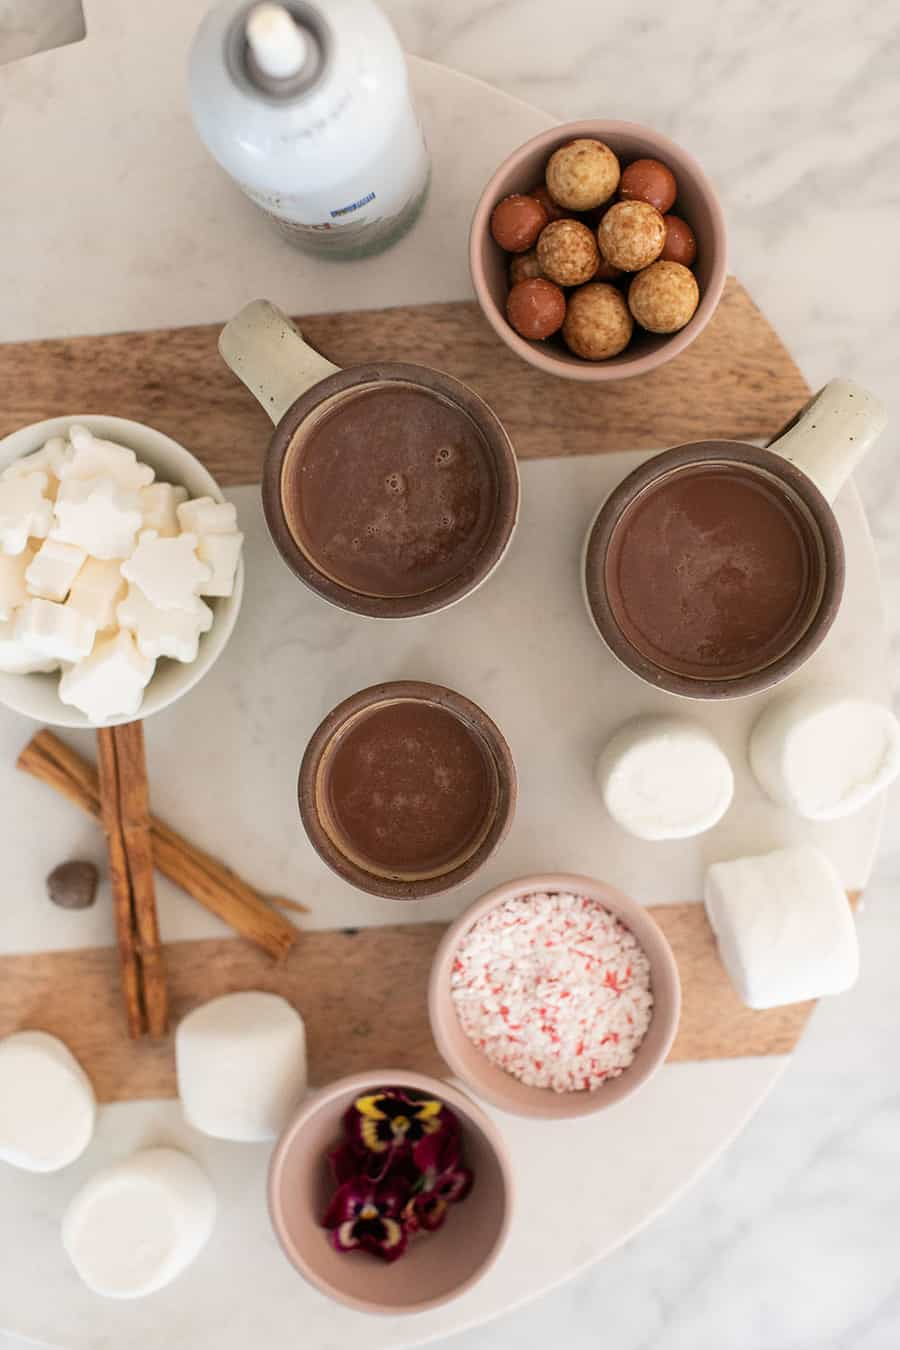 Hot chocolate on a board with mugs filled with hot chocolate